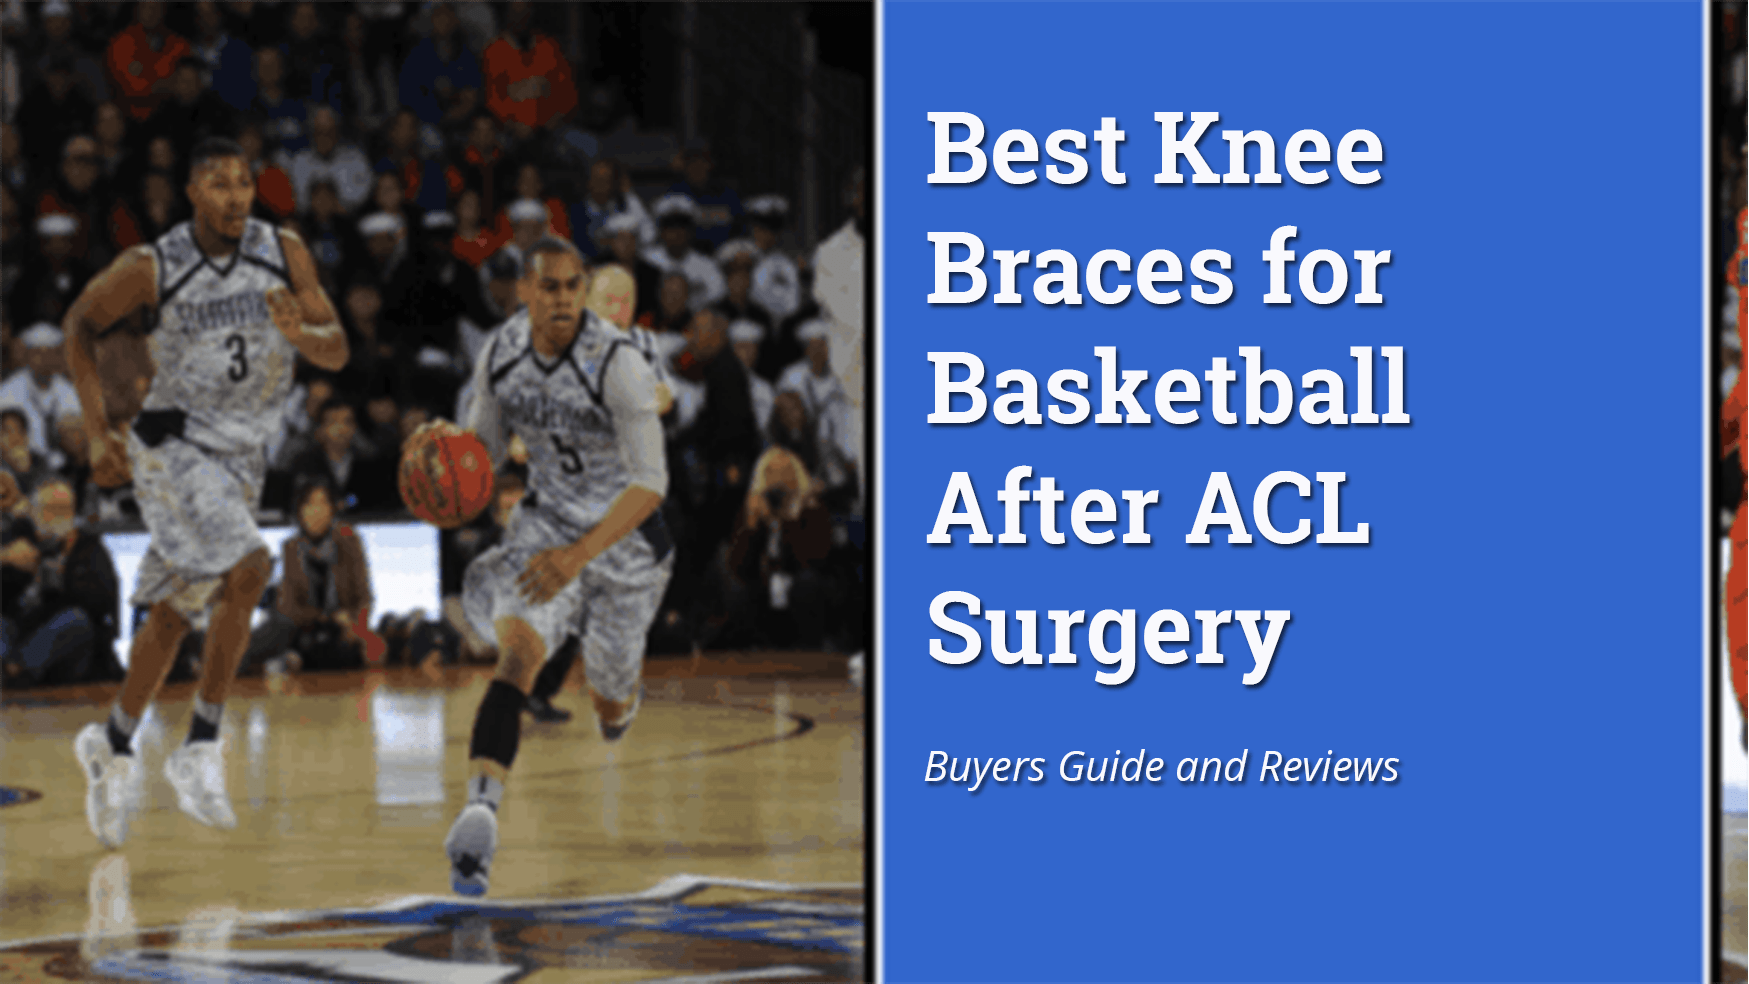 best-knee-brace-for-basketball-after-acl-surgery